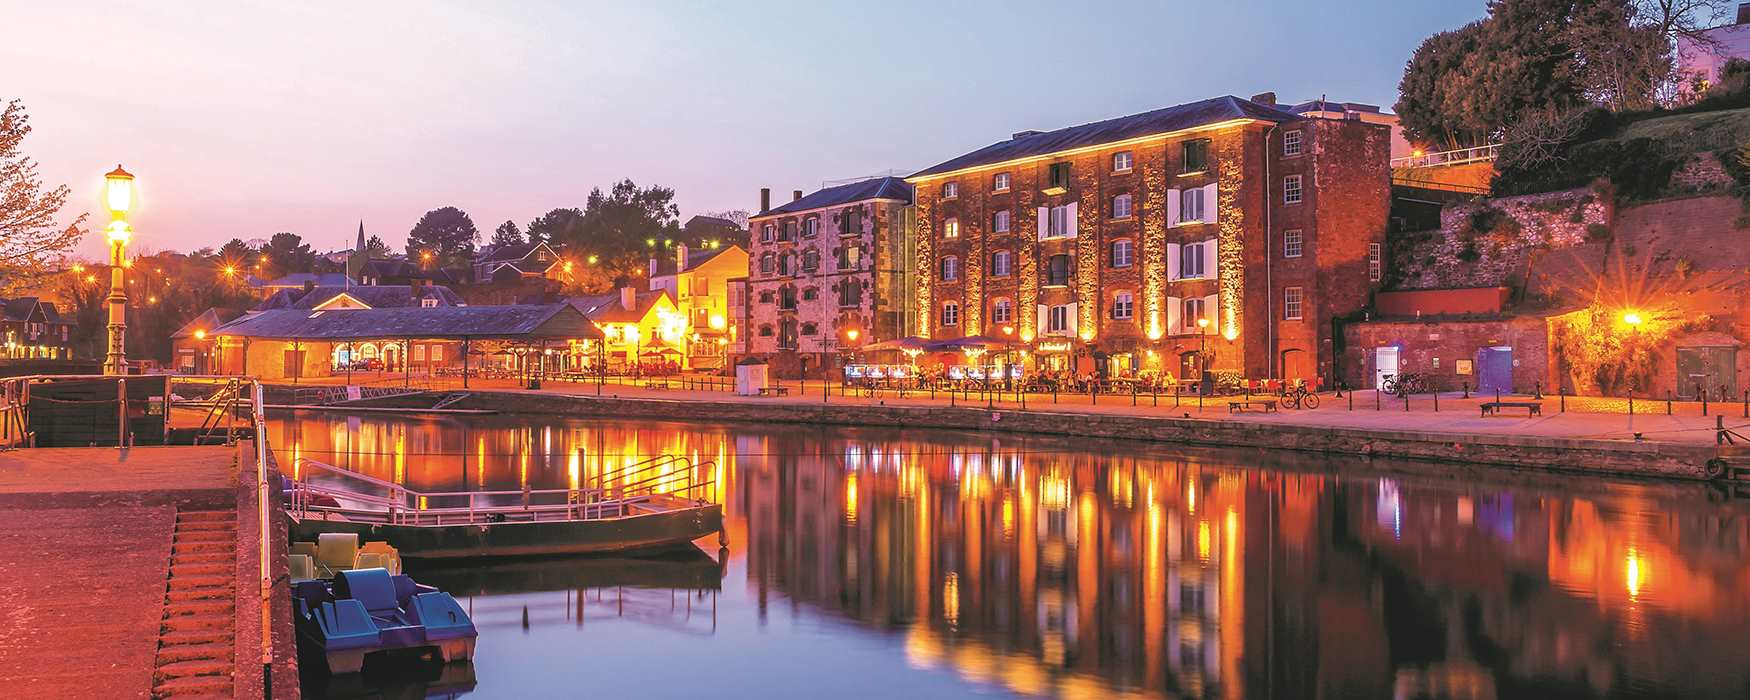 Exeter Quayside, at nighttime